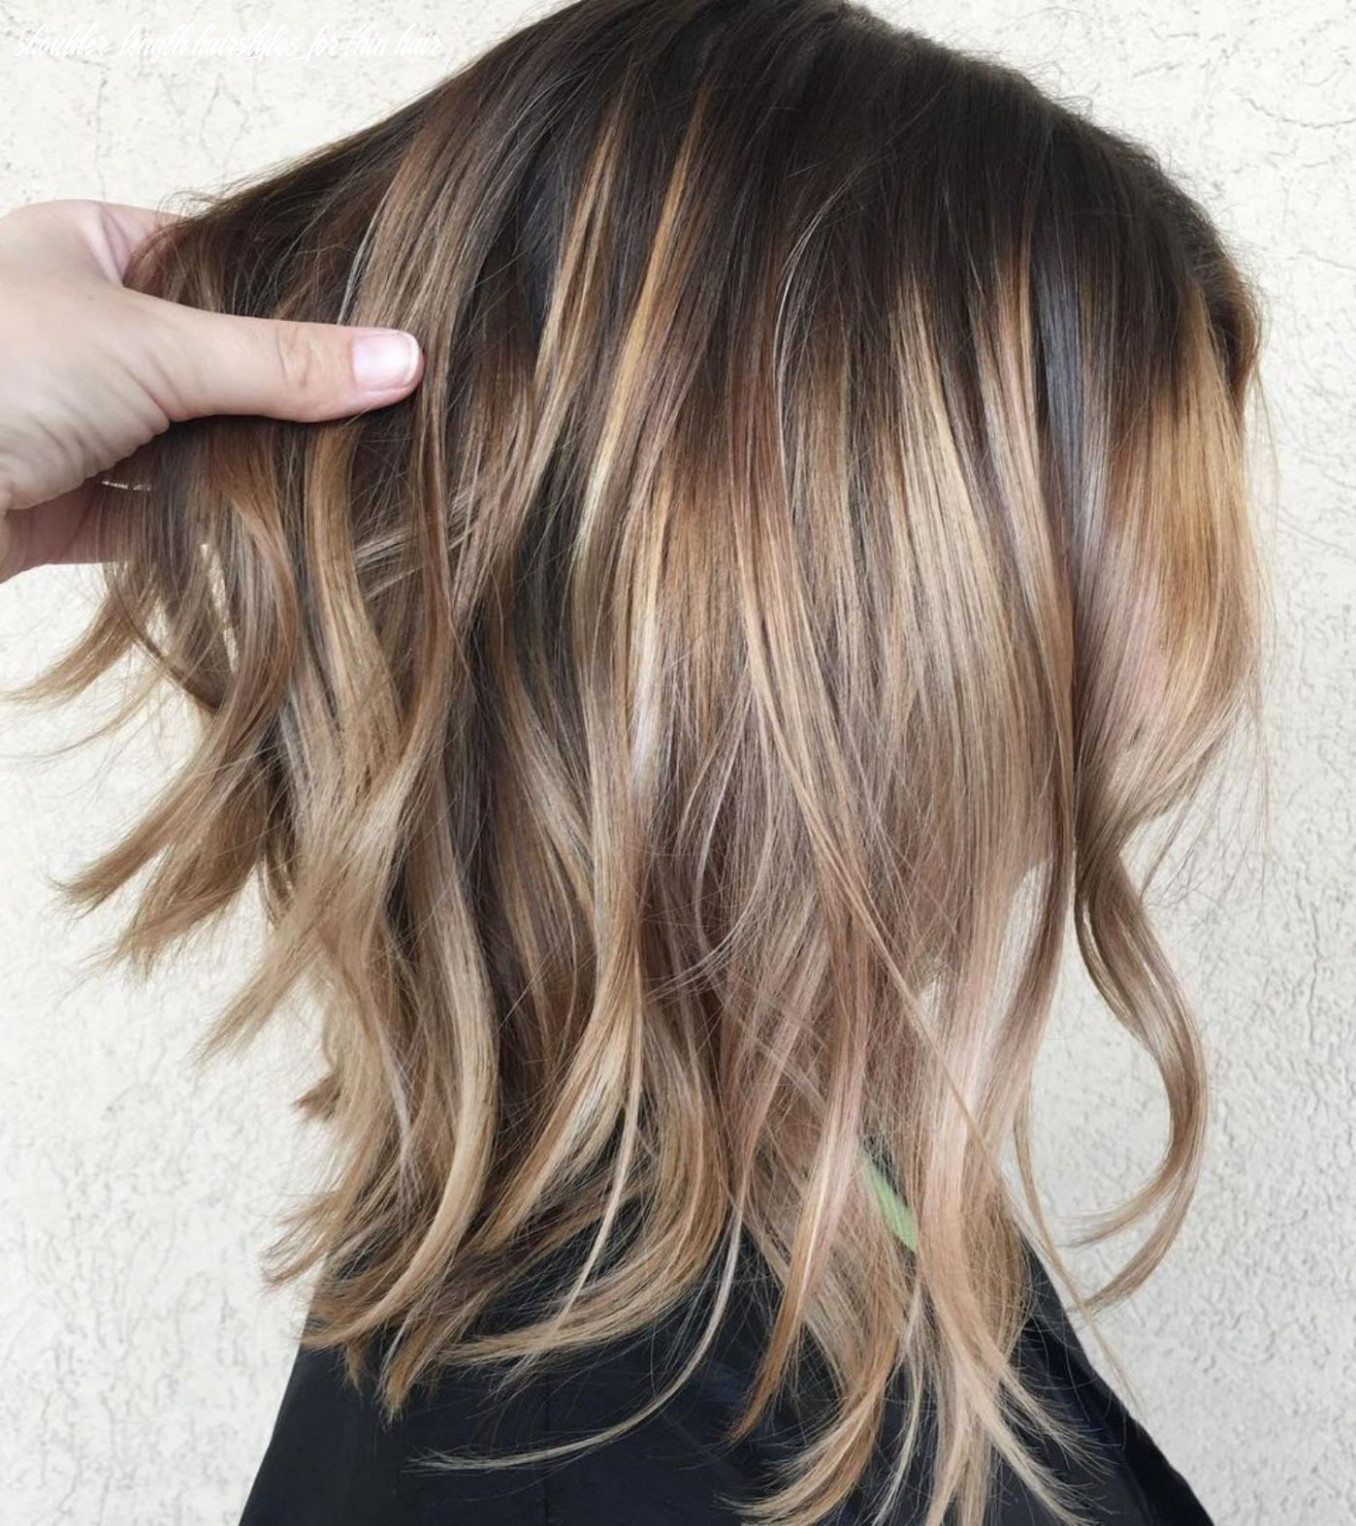 10 awesome perfect medium length hairstyles for thin hair (with